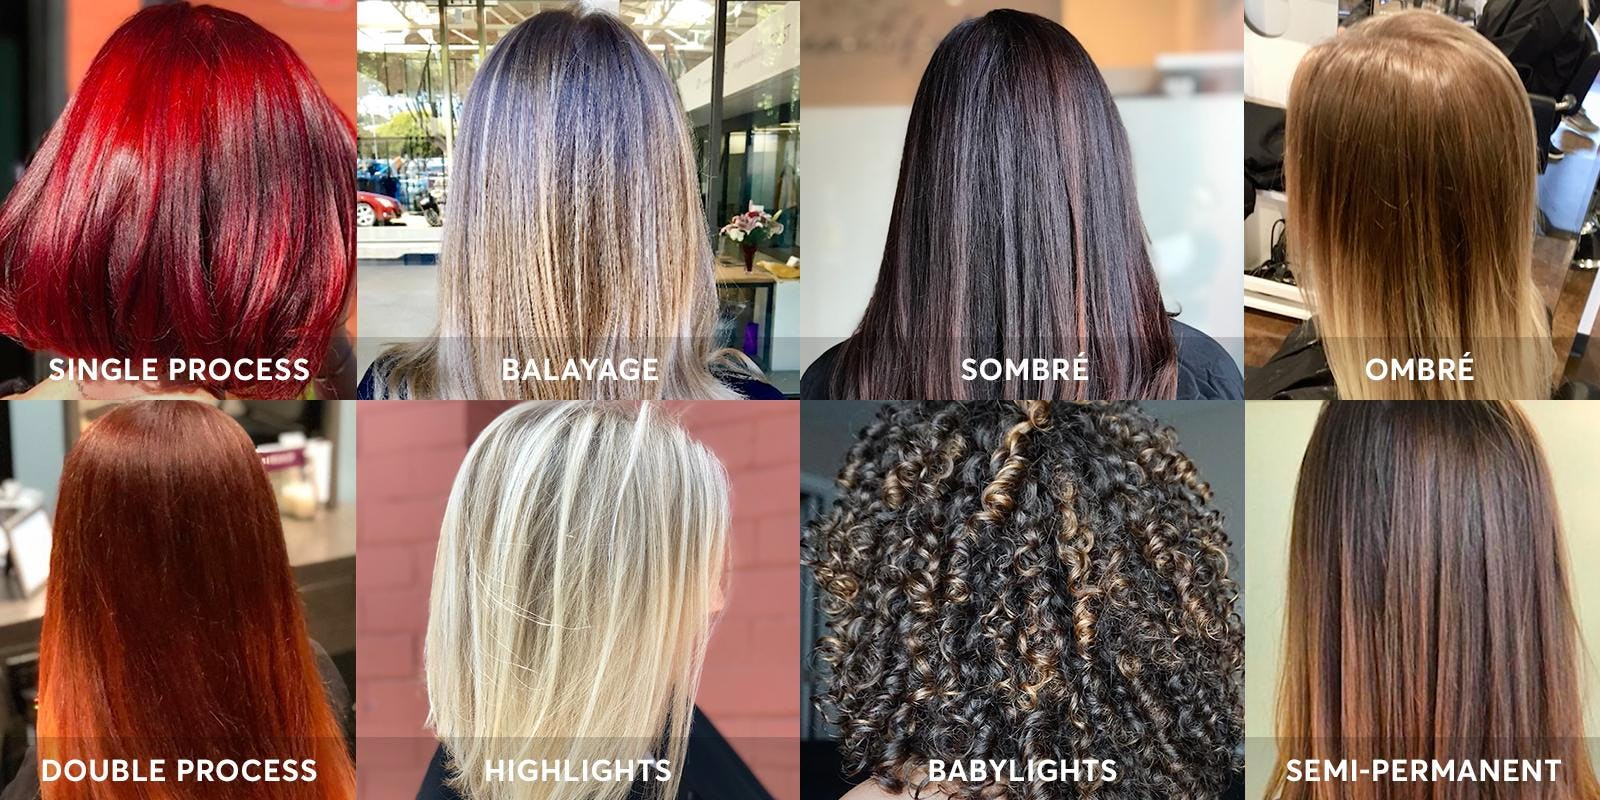 Balayage, Ombre, and Sombre , Oh My!